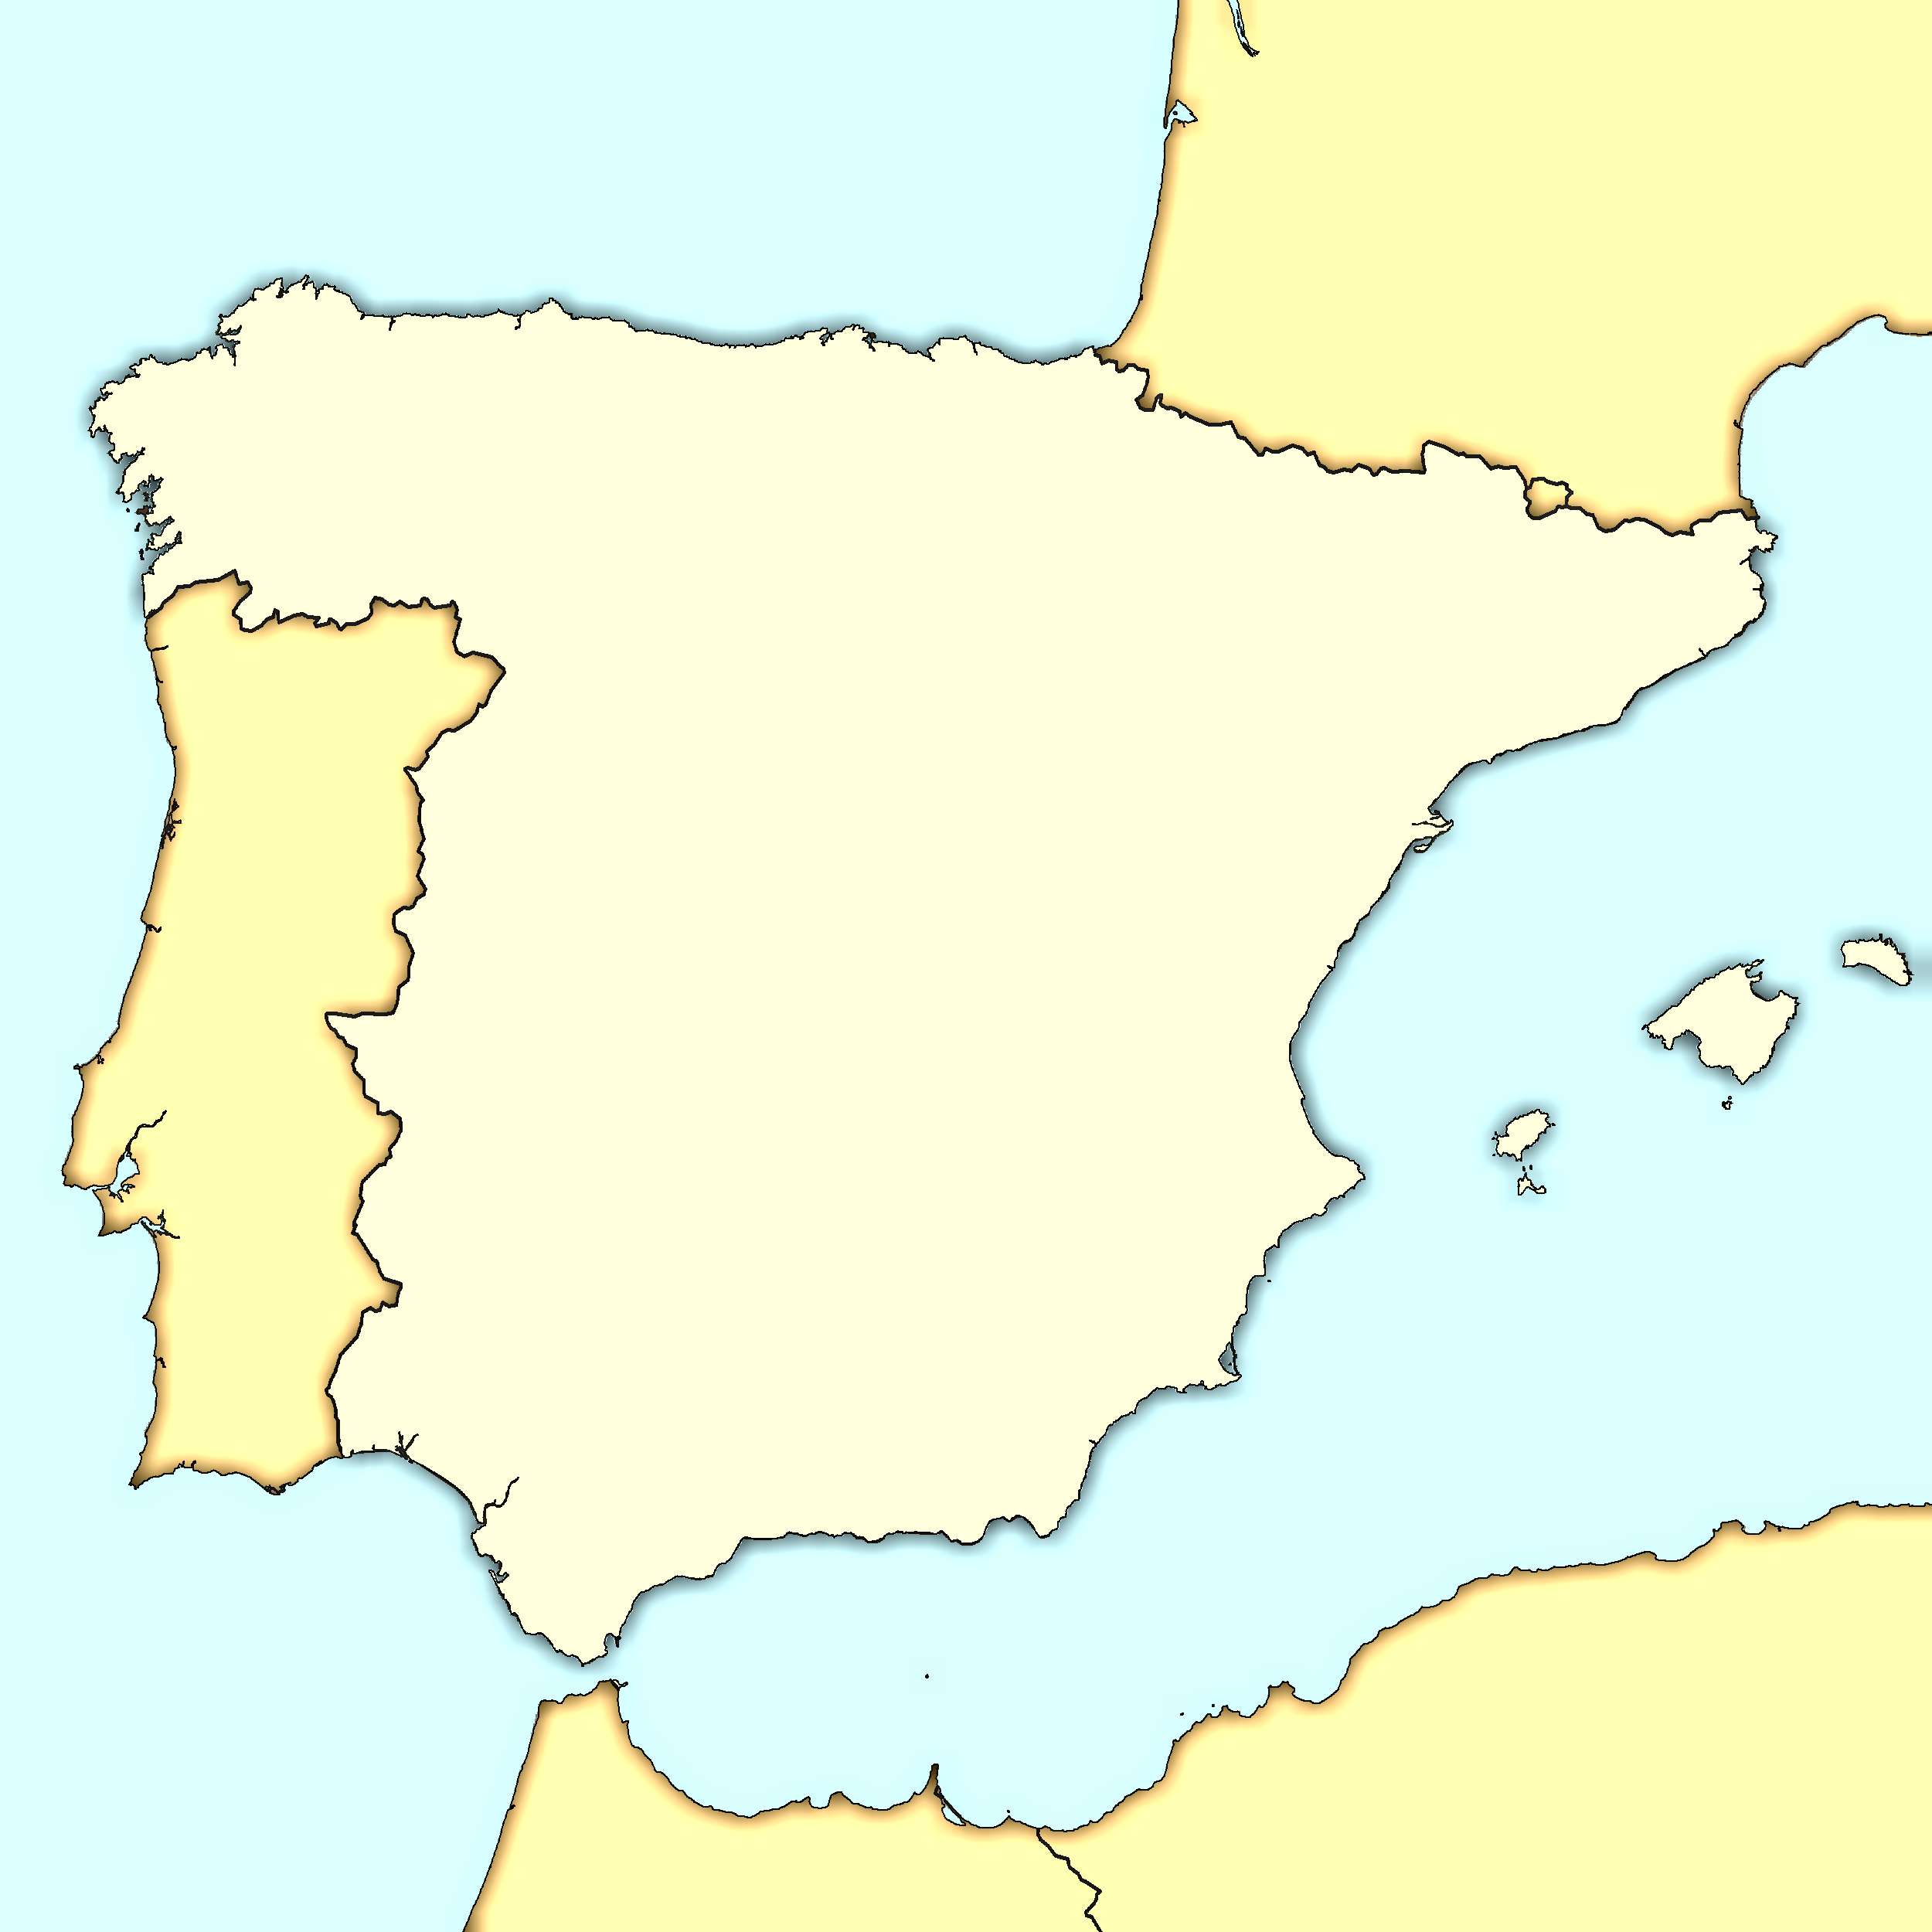 Blank Map Of Spain Regions.File Spain Map Modern Png Wikimedia Commons